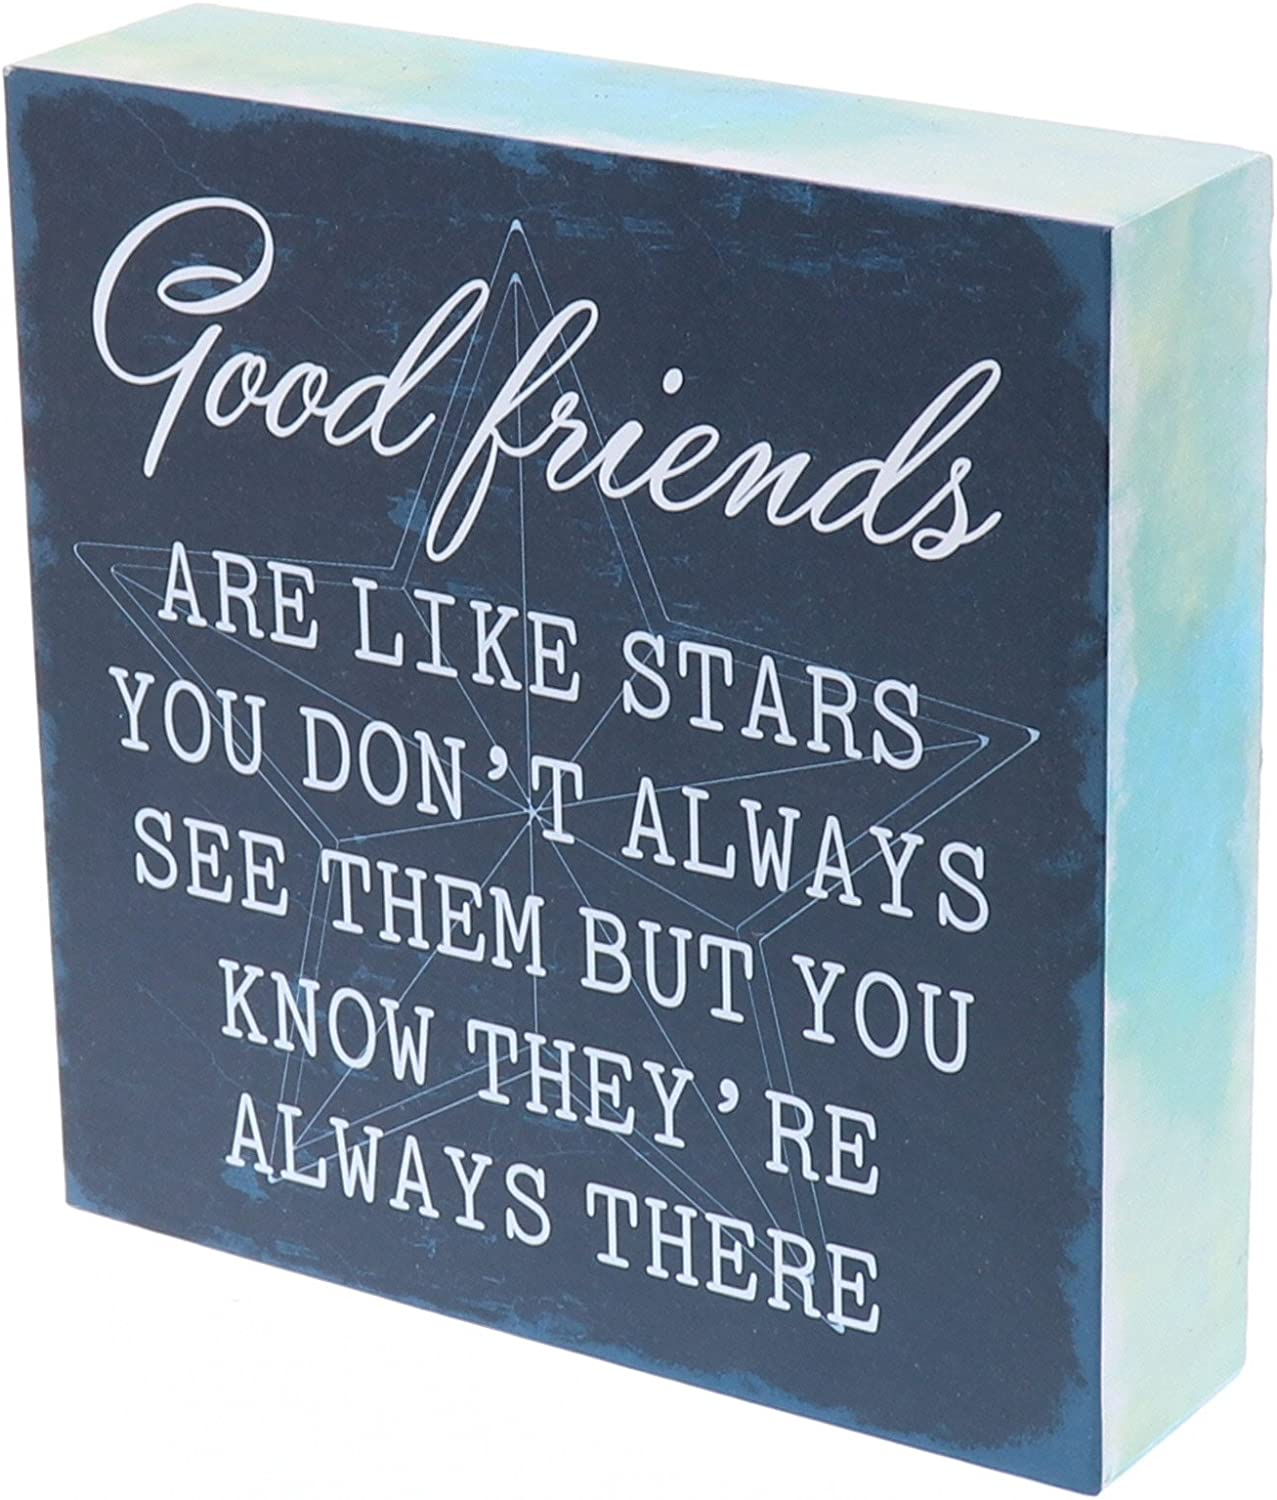 "Barnyard Designs Good Friends are Like Stars Box Wall Art Sign, Primitive Country Farmhouse Home Decor Sign with Sayings 6"" x 6"""